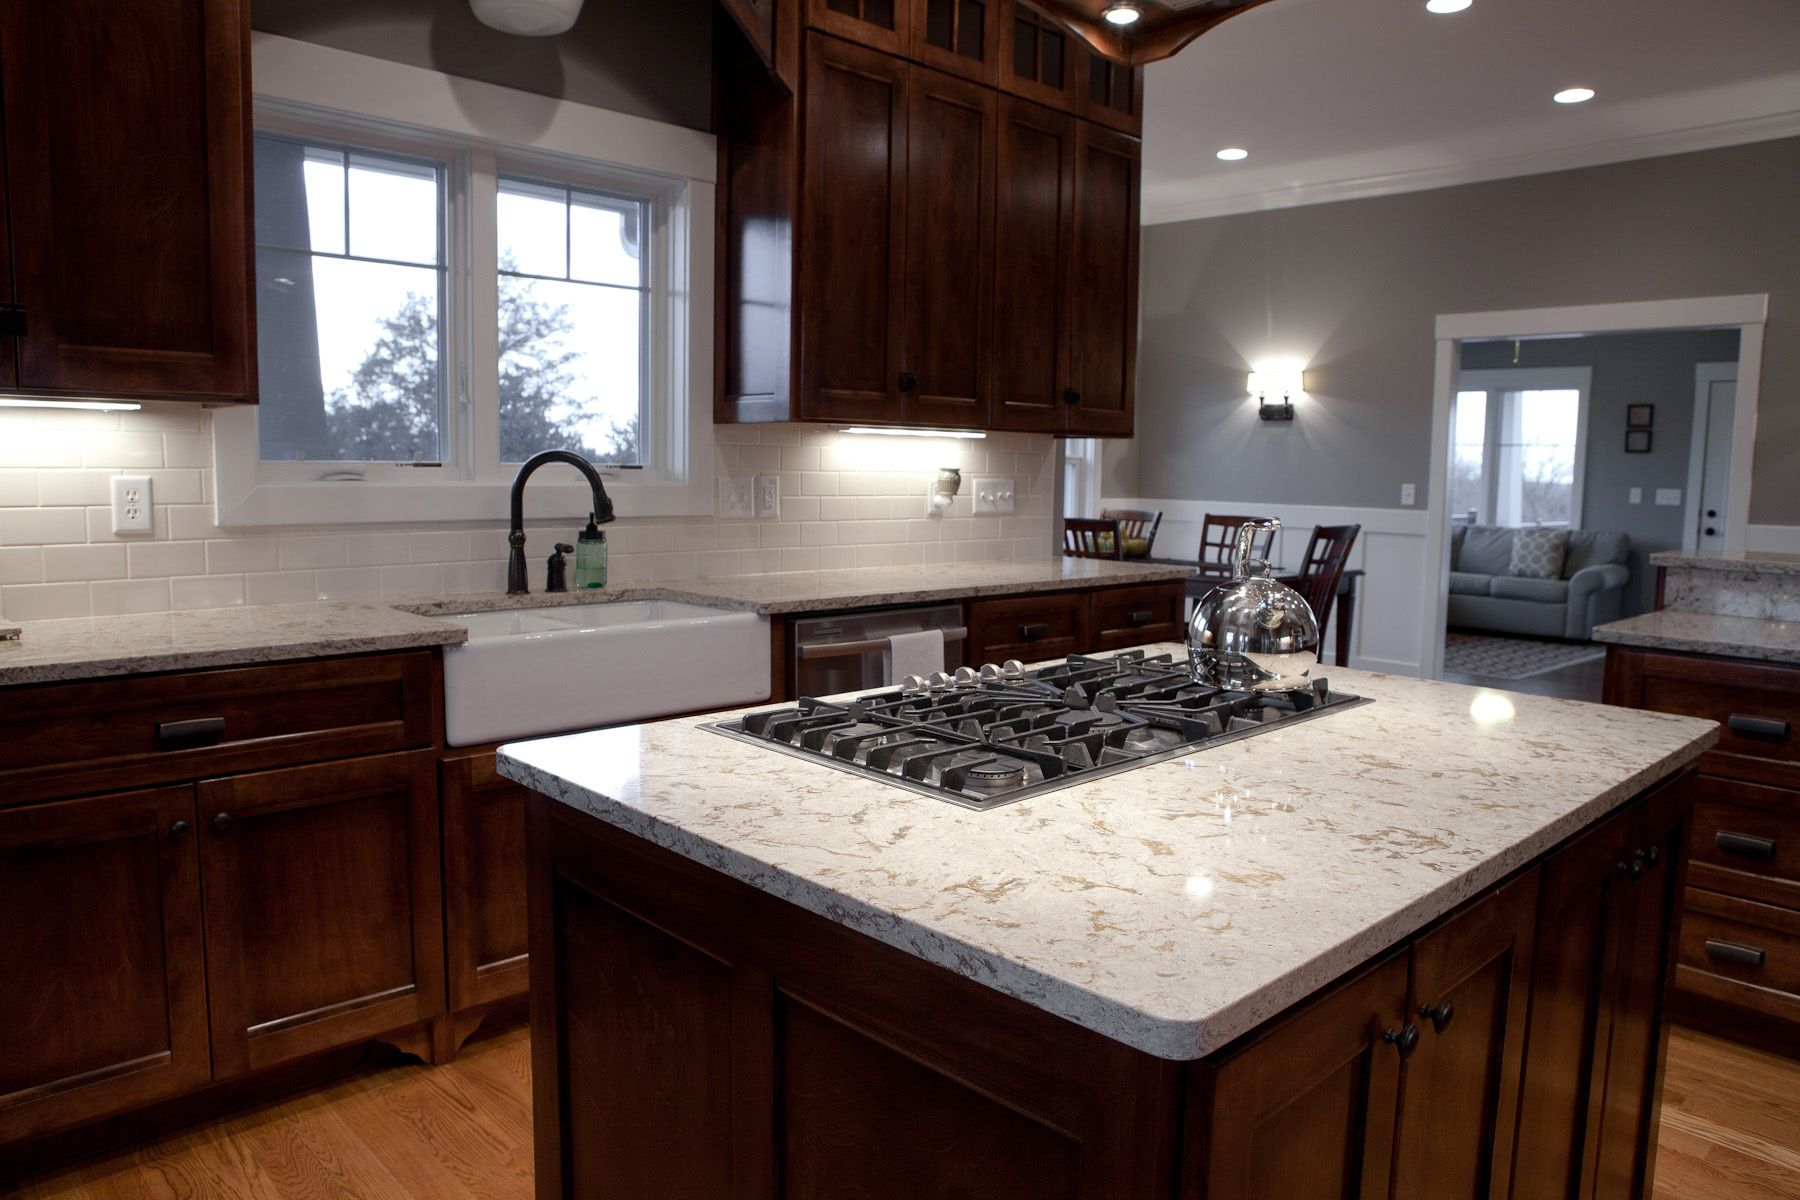 Black Countertop Stove : quartz kitchen countertops wooden kitchen cabinets white countertops ...